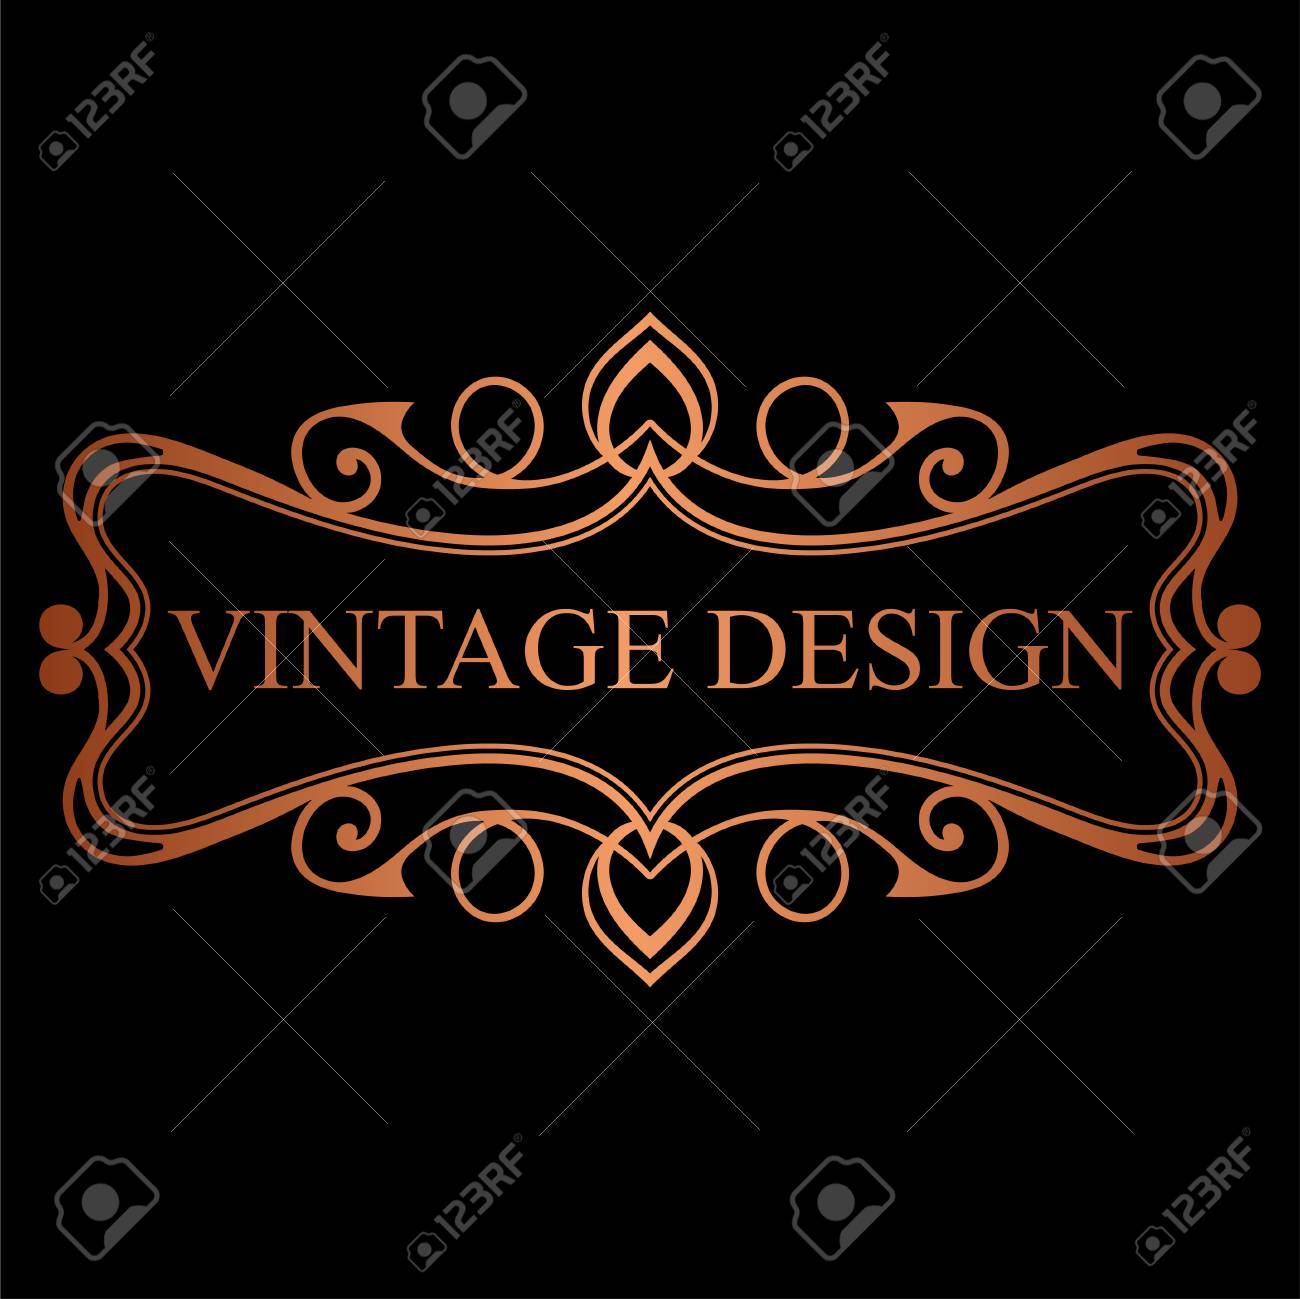 Golden Vintage Calligraphic Label Ornate Logo Template For Design